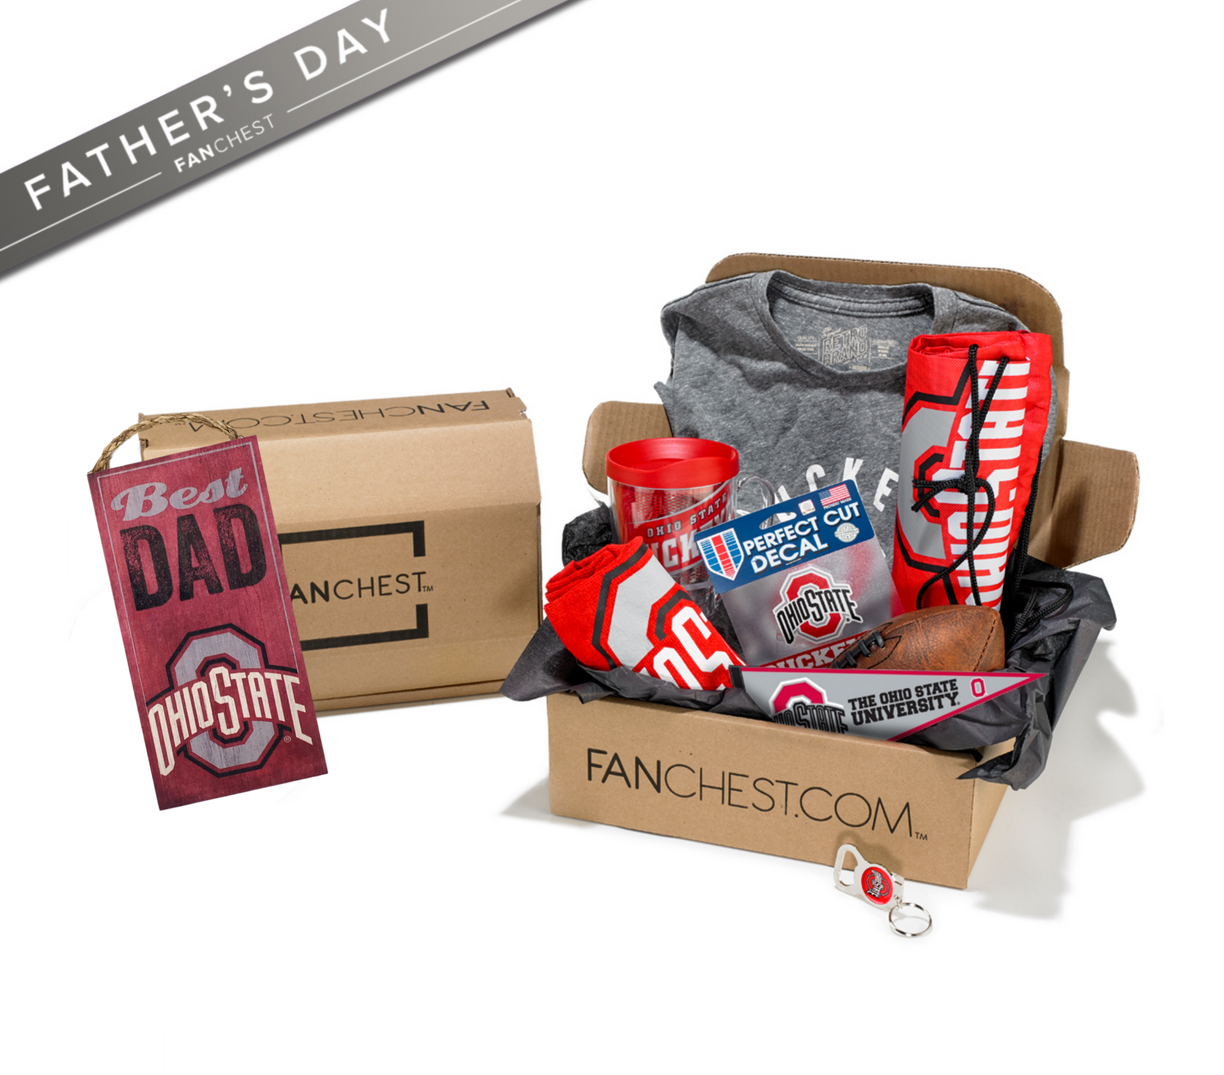 Ohio State Father S Day Gift Box Ohio State Gear For Dads Perfect Gift For Dad Fathers Day Gifts Ohio State Gear